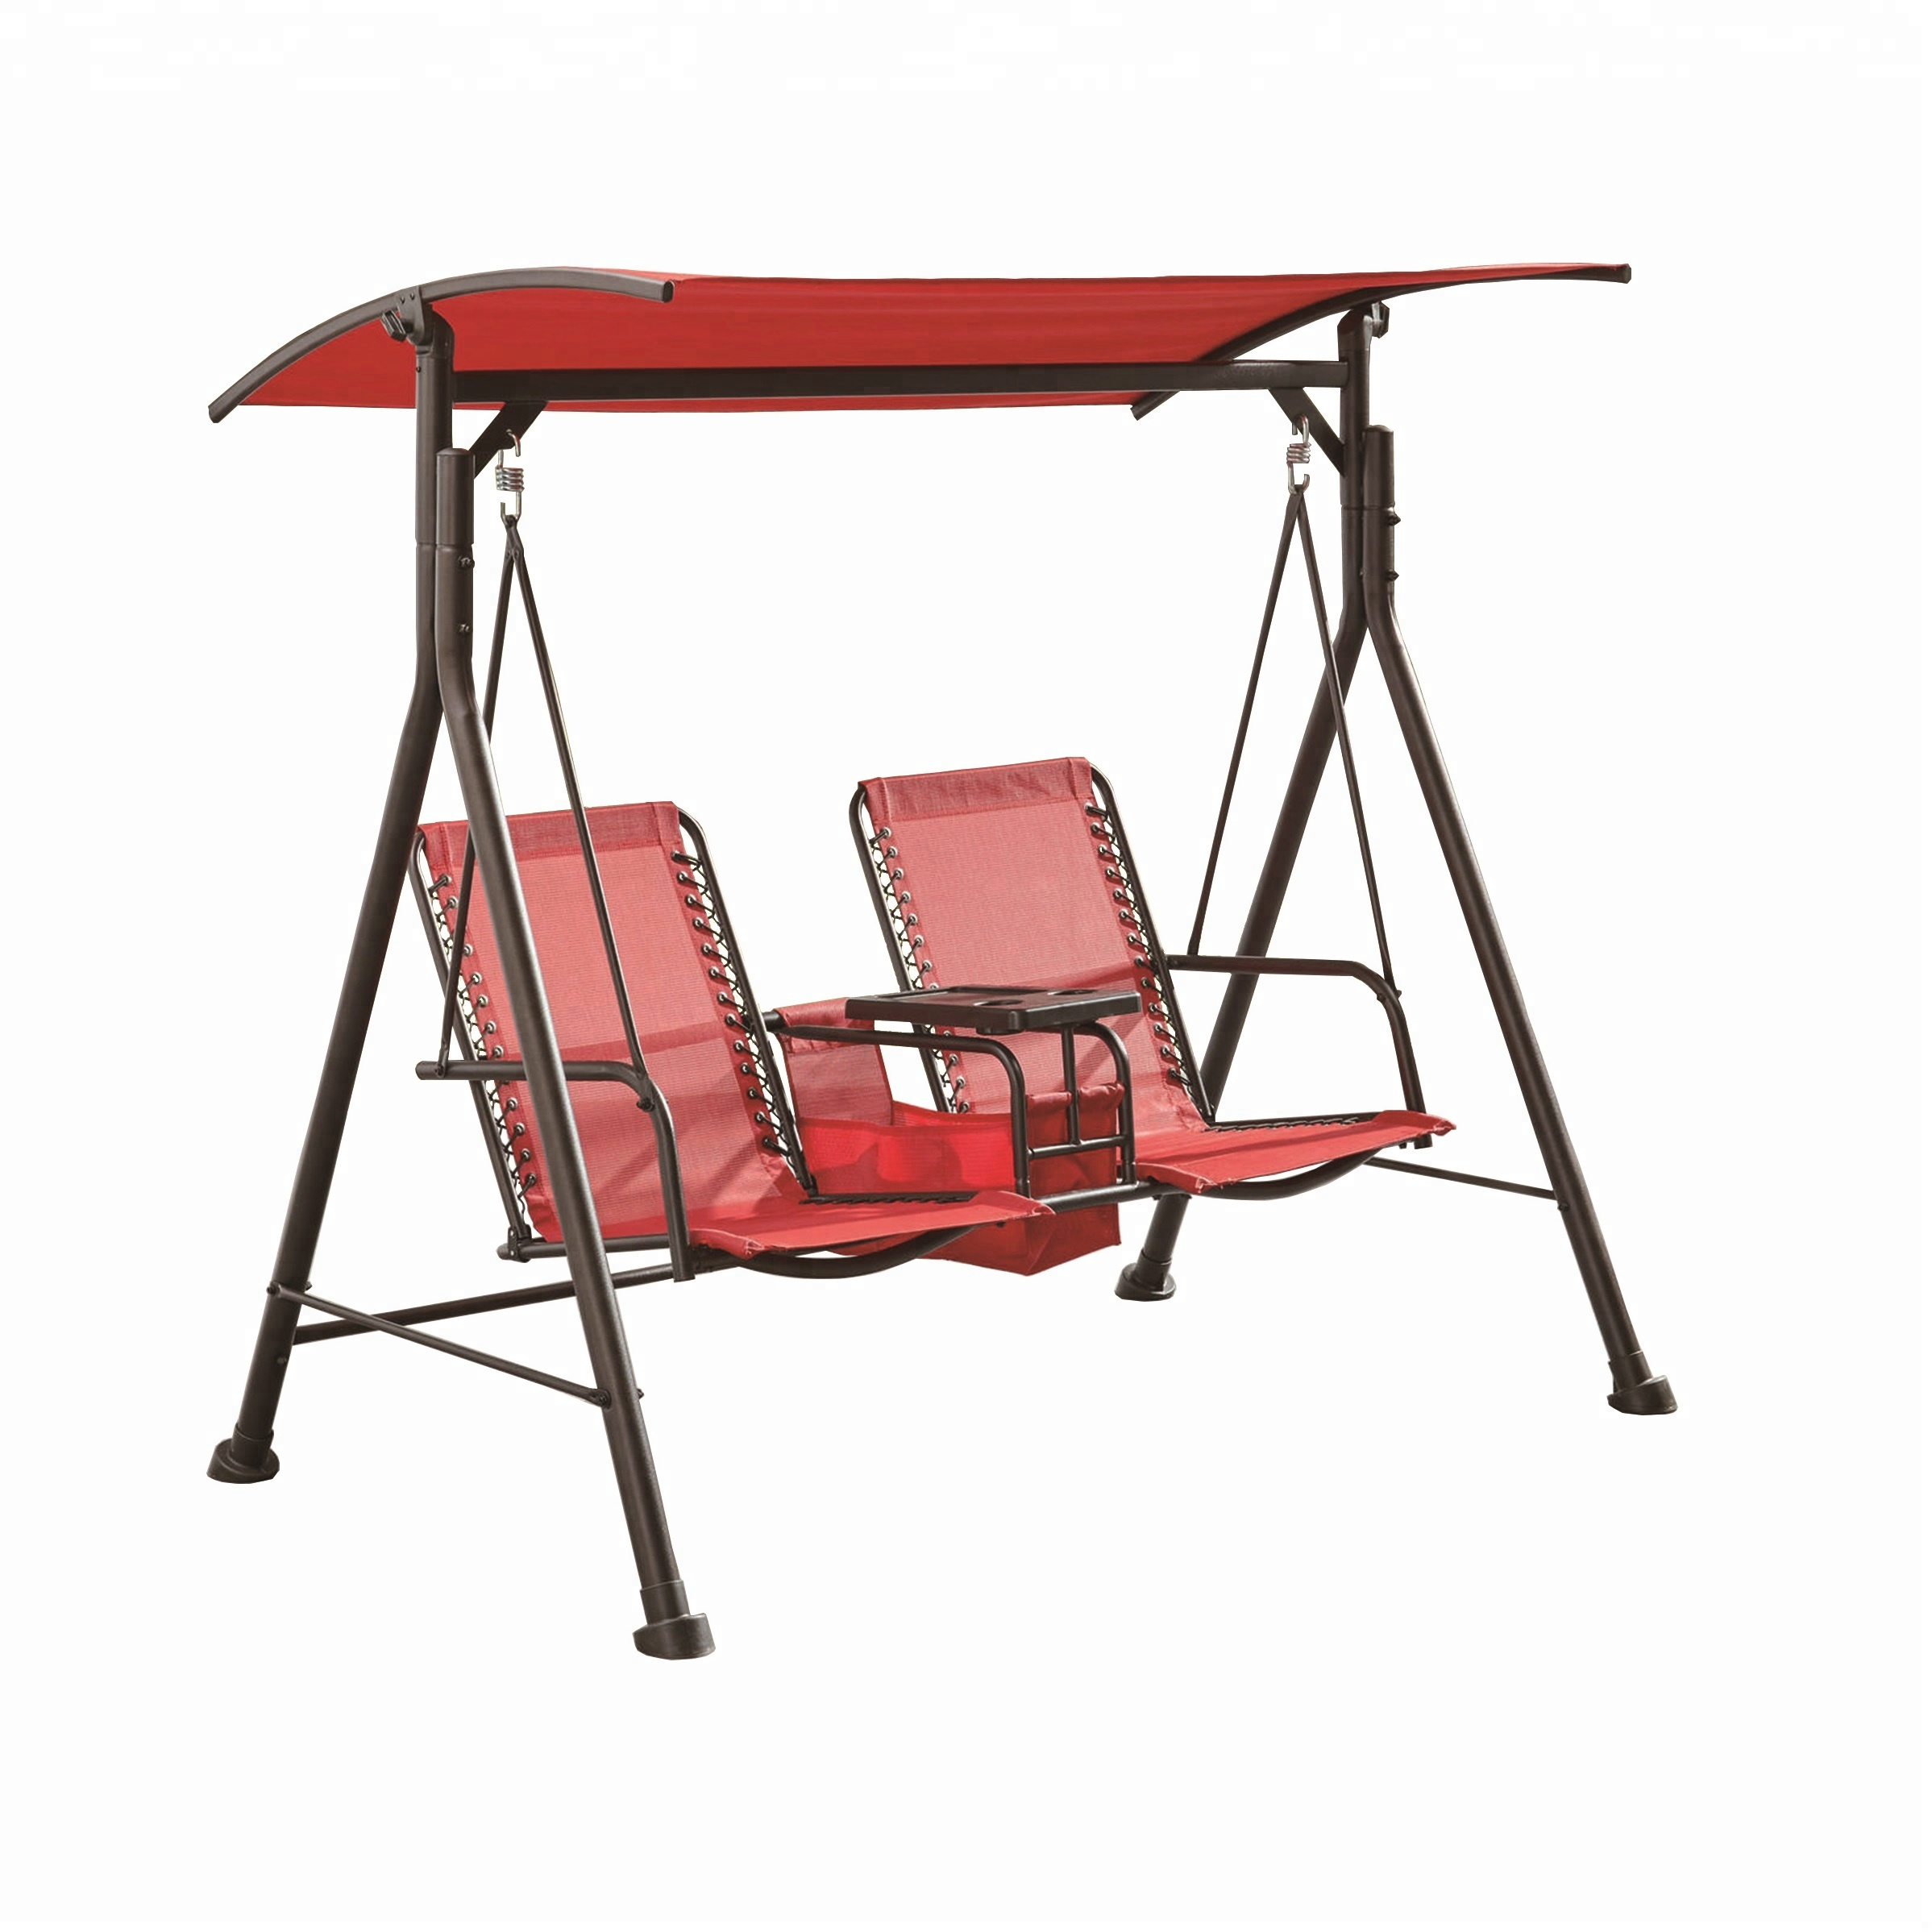 2 Seater Steel Sling Patio Swing With Table Attached Buy Patio